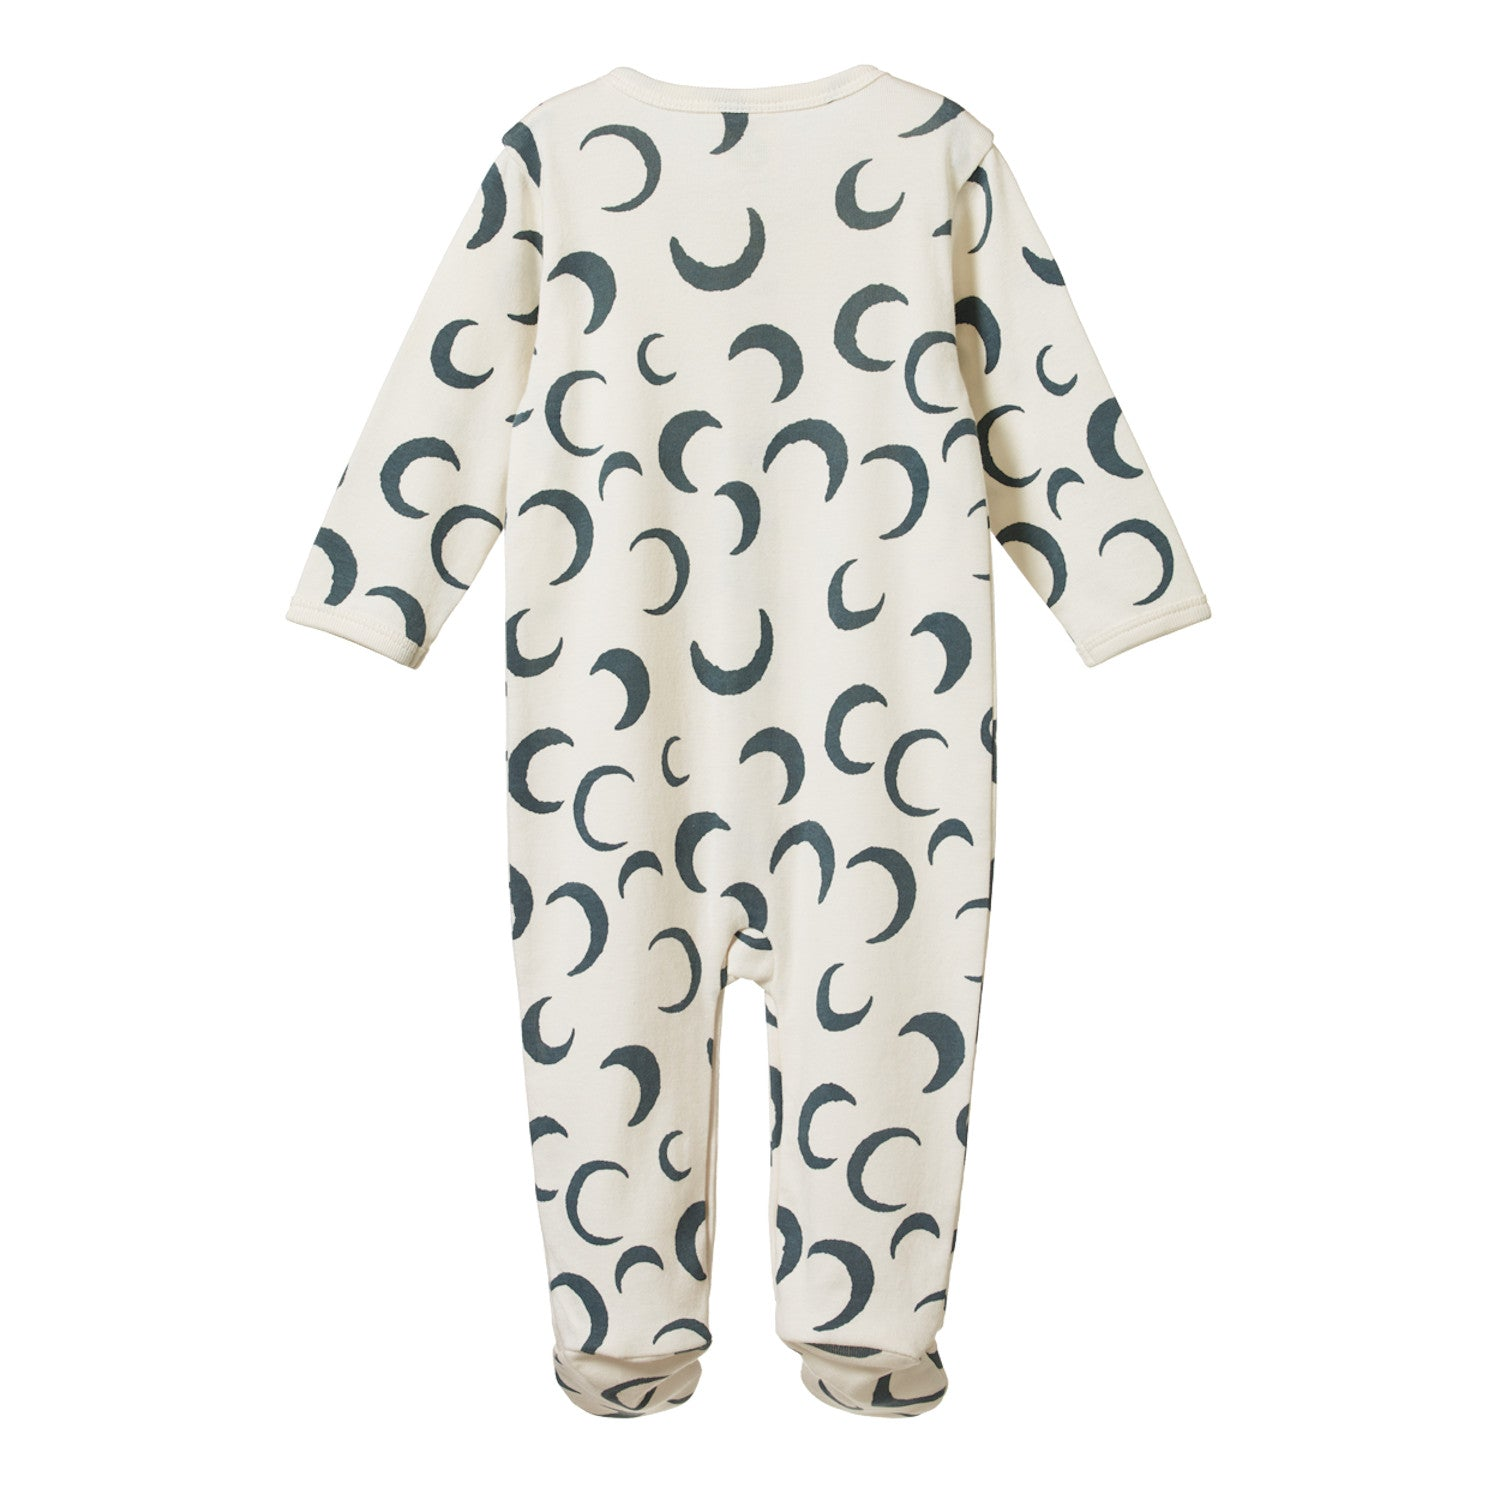 Nature Baby Stretch and Grow - Crescent Moon Print